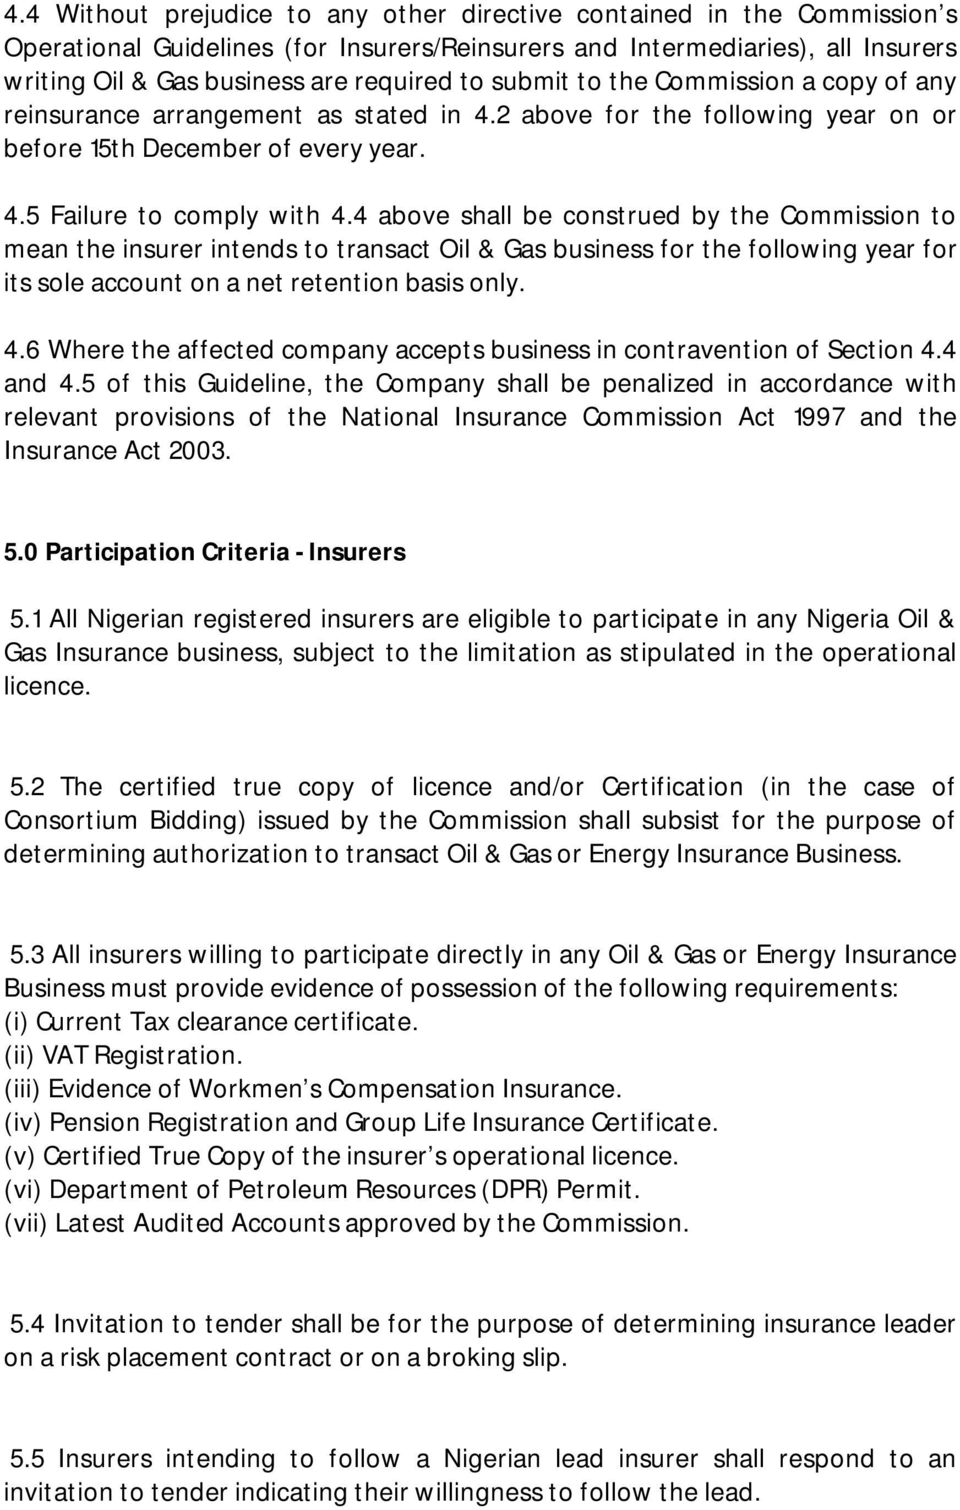 4 above shall be construed by the Commission to mean the insurer intends to transact Oil & Gas business for the following year for its sole account on a net retention basis only. 4.